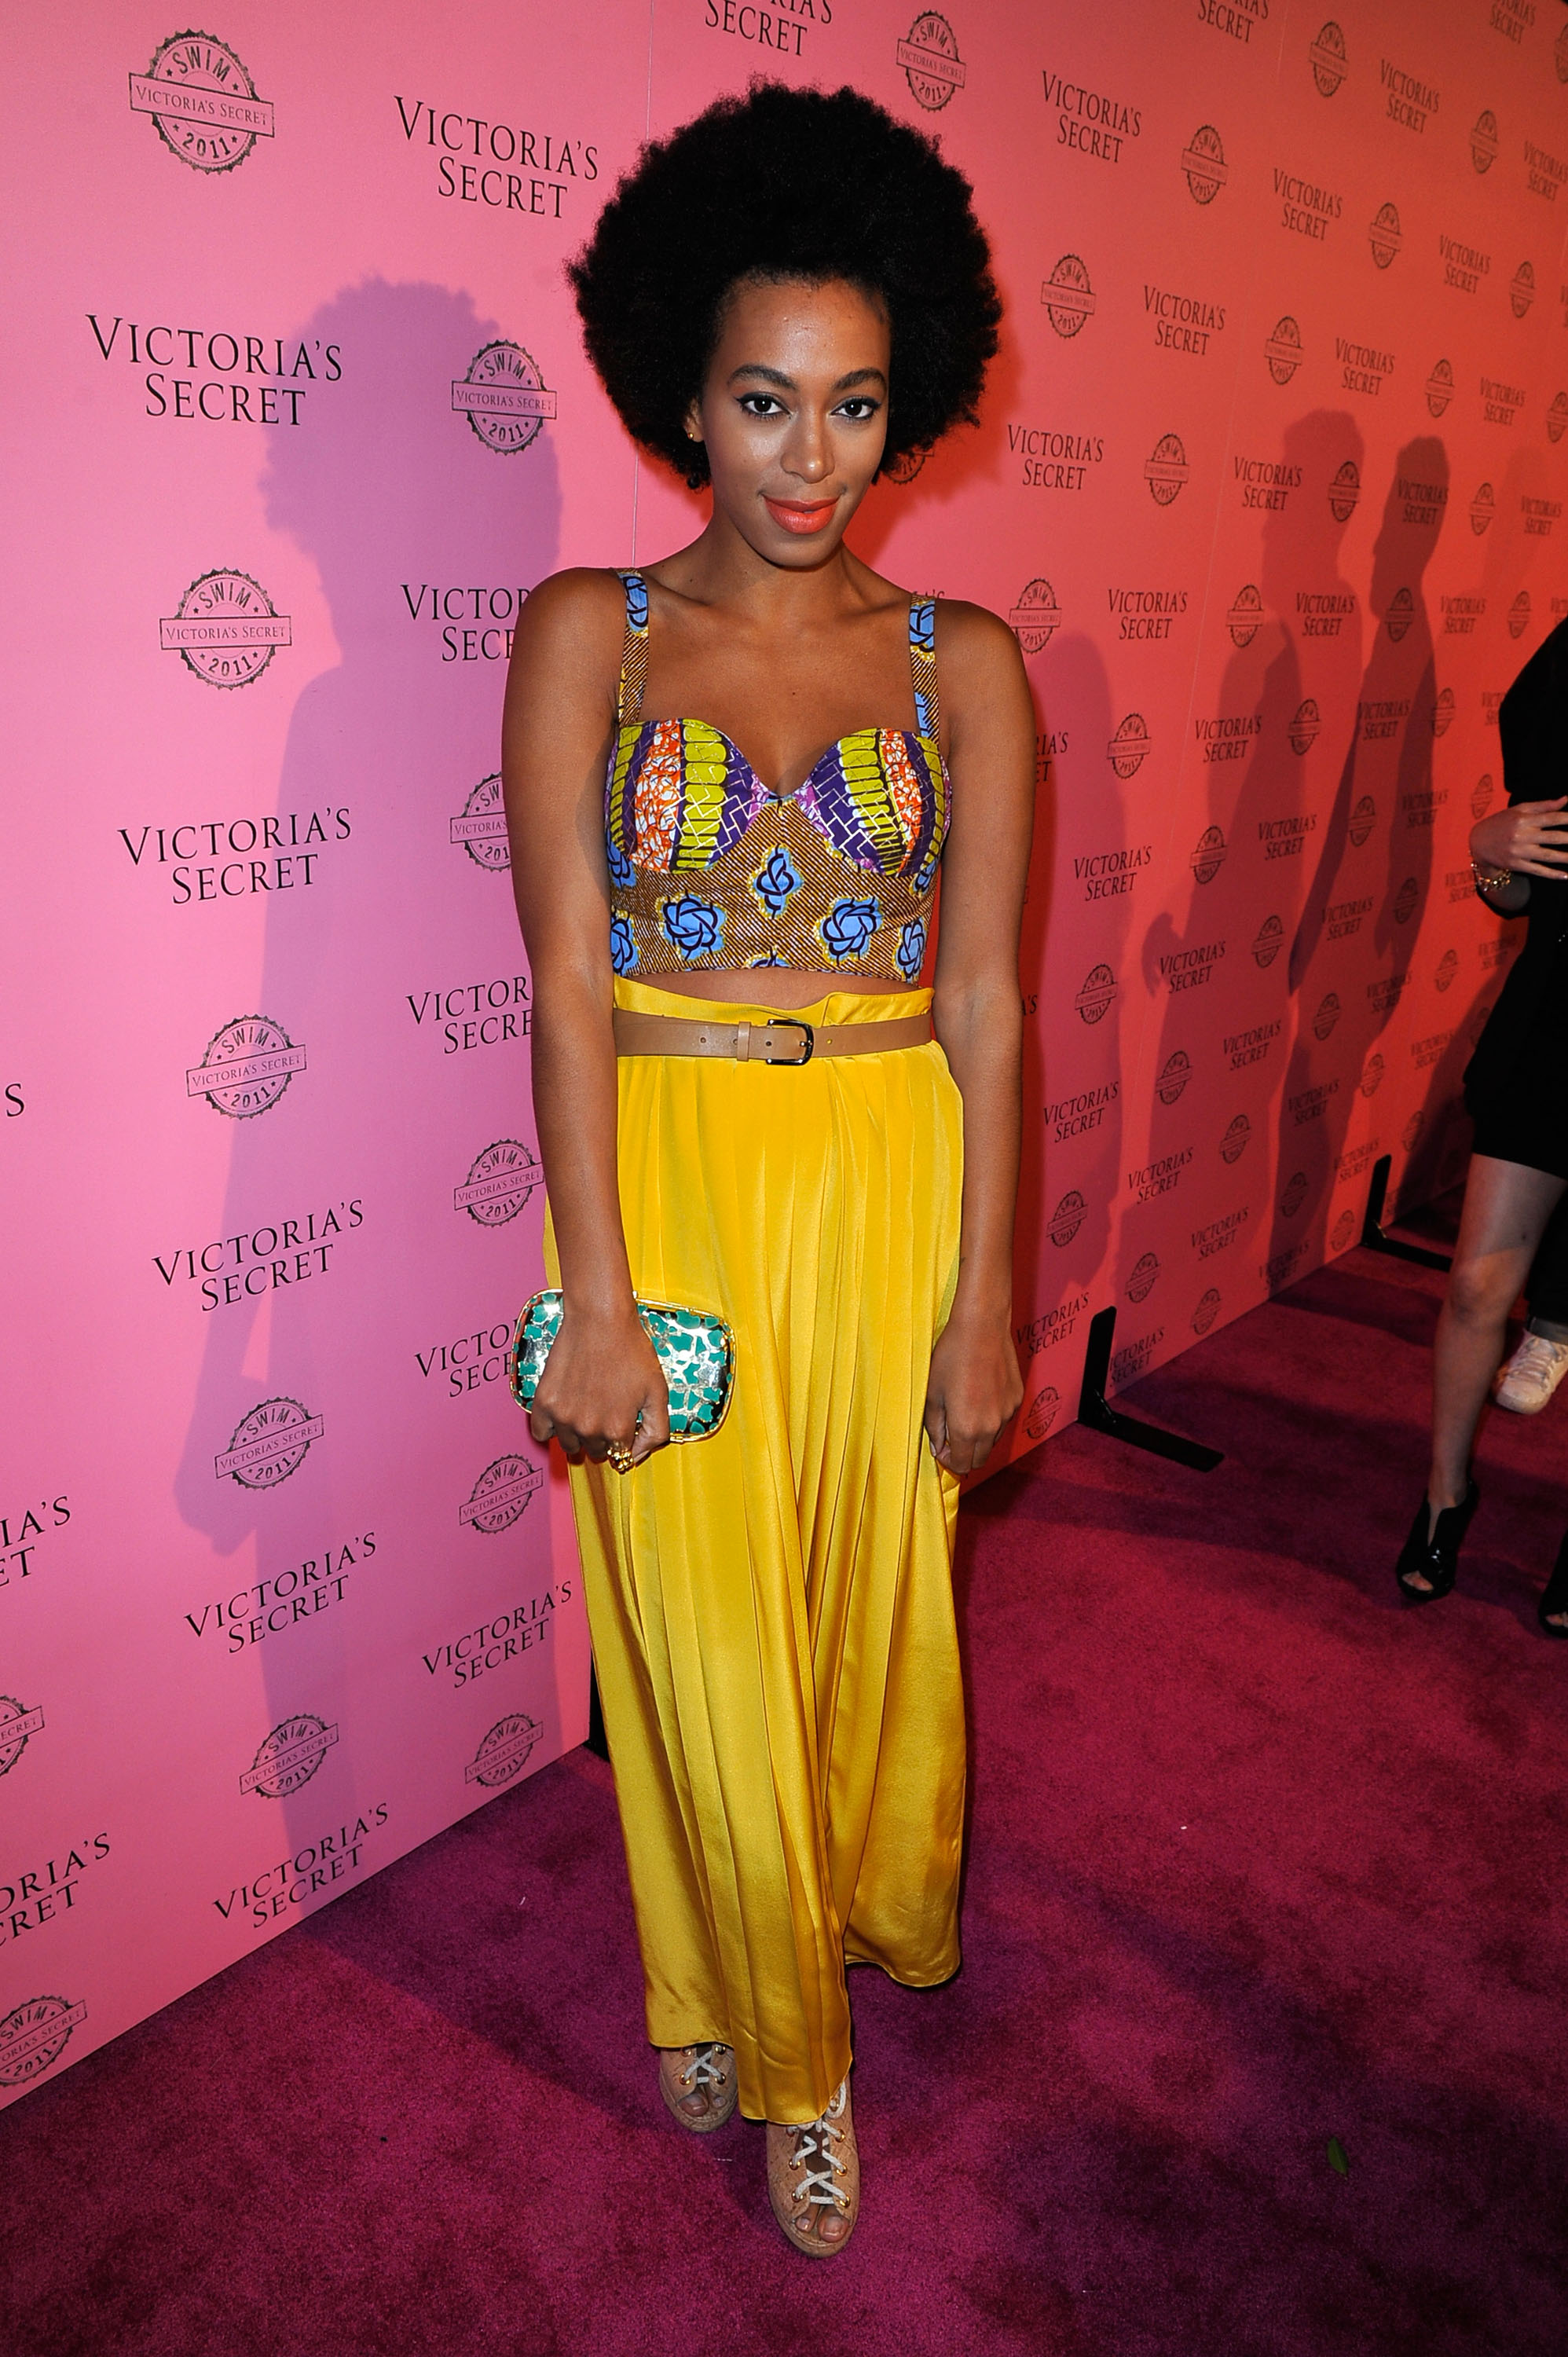 LOS ANGELES, CA - MARCH 30: Solange Knowles arrives at the 2011 Victoria's Secret SWIM Collection Pink Carpet Event hosted by VS Angels at Club L on March 30, 2011 in Los Angeles, California. (Photo by Jerod Harris/Getty Images for Victoria's Secret)